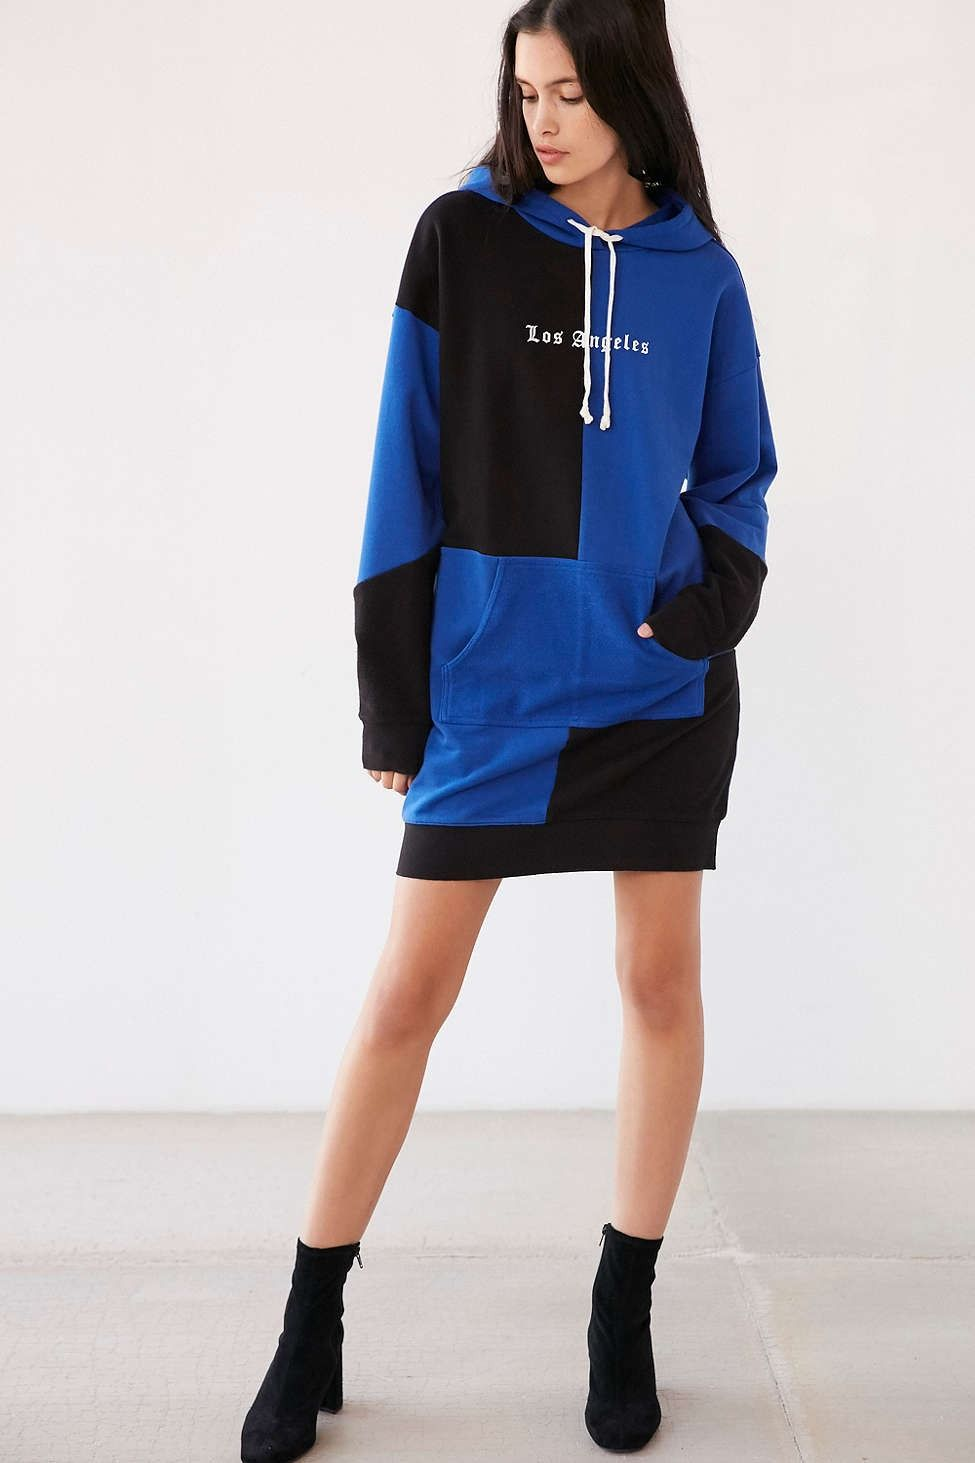 752dbae943 Juicy Couture For UO Oversized Hoodie Sweatshirt Dress - Urban Outfitters